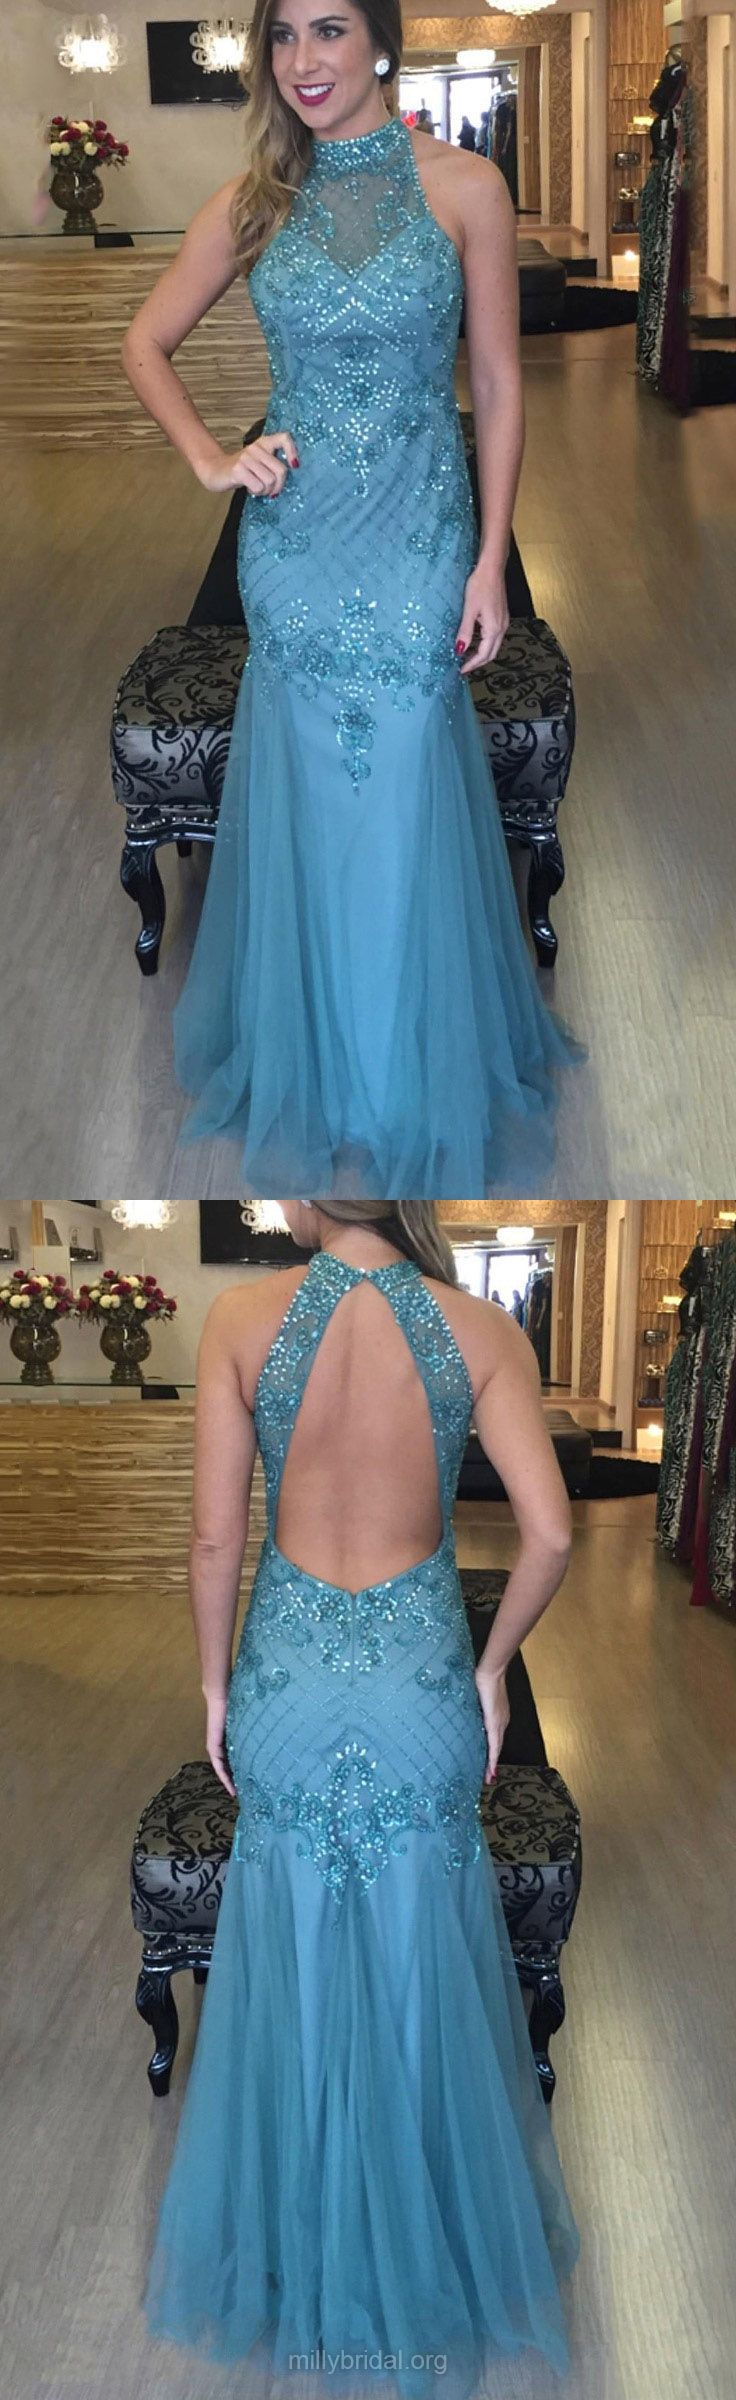 Blue Prom Dresses Long, Mermaid Formal Dresses 2018, High Neck Tulle Party Dresses Beading, Open Back Evening Gowns Cheap